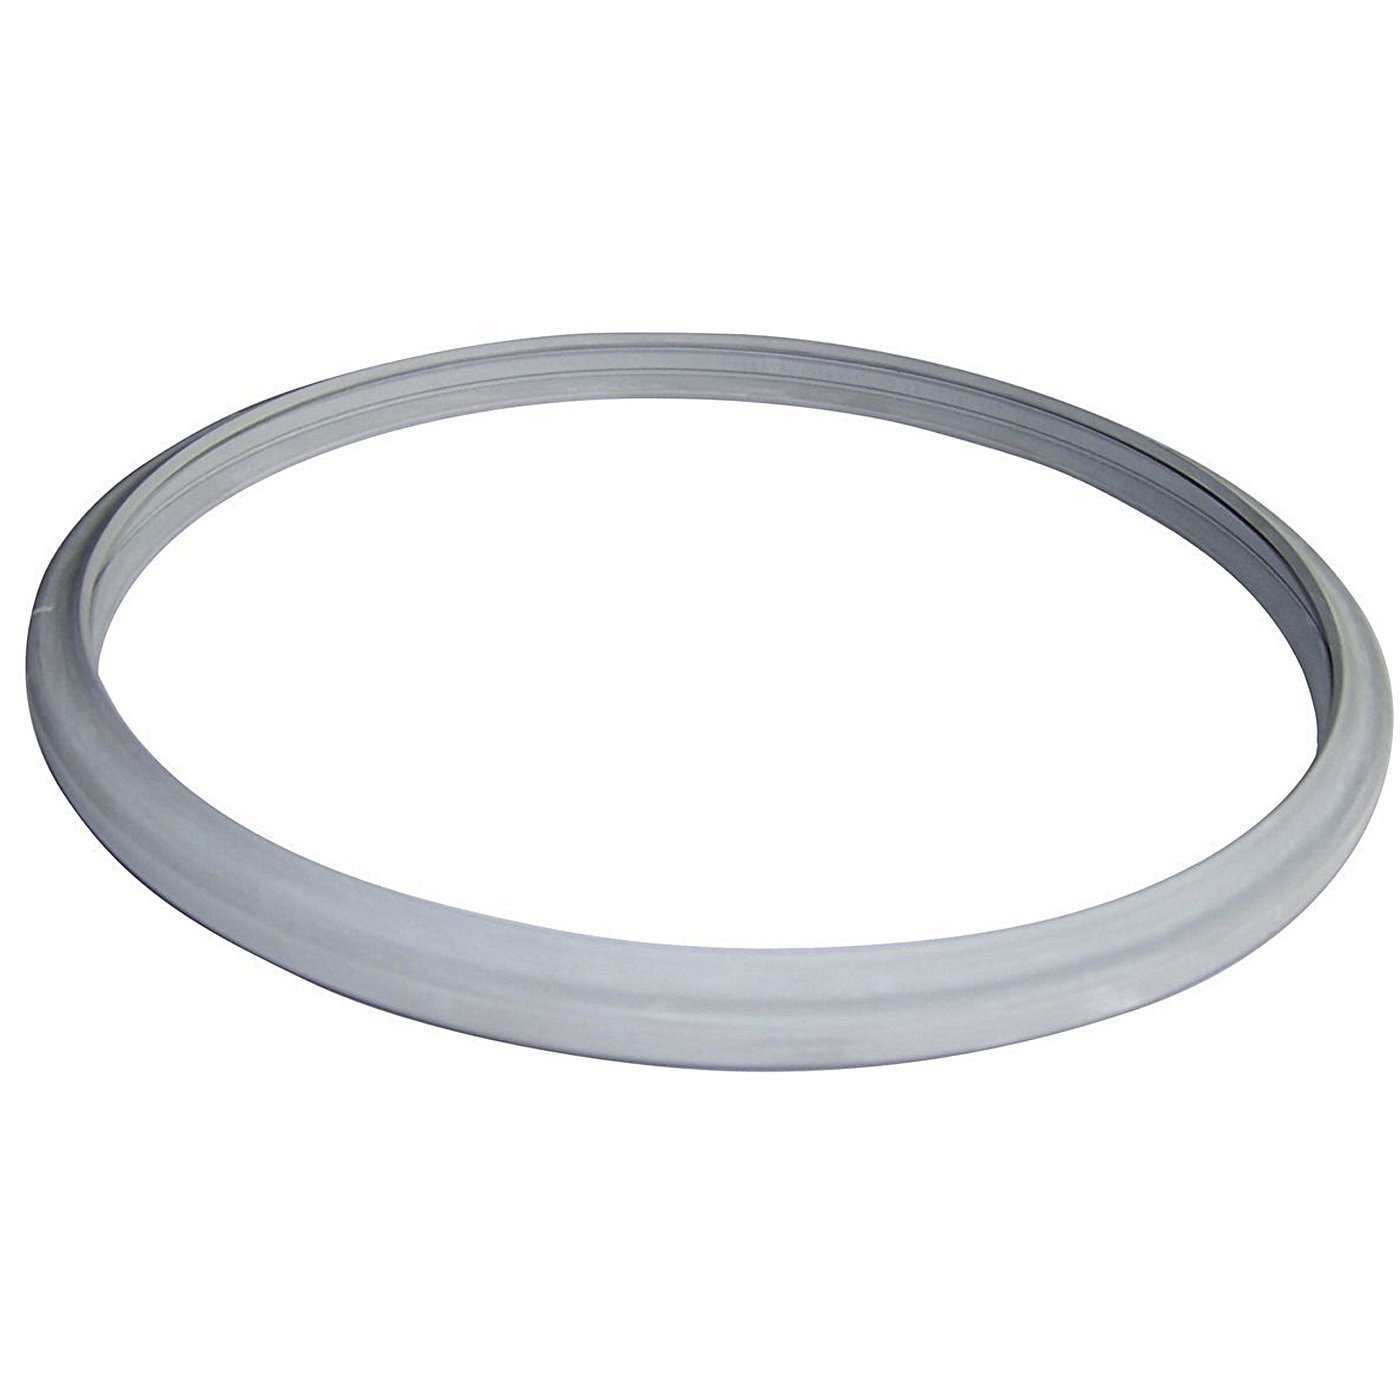 Fissler Sealing Ring for Pressure Cooker 26 cm F038687002050